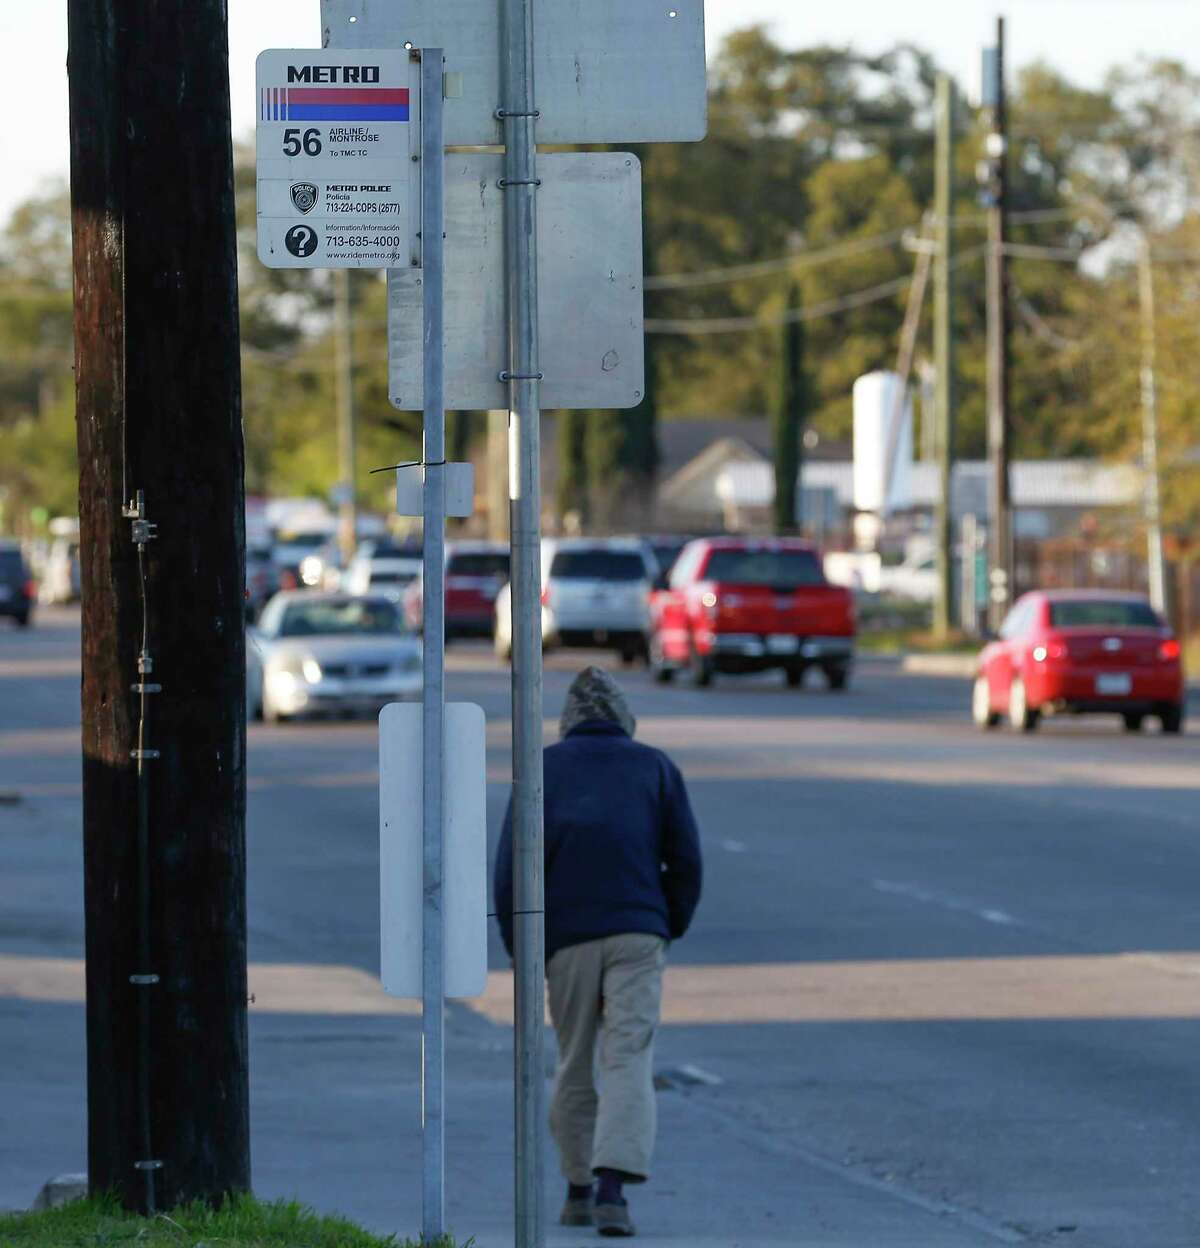 A pedestrian walks by a bus stop at Canino and Airline on Feb. 26, 2020, in Houston. Metropolitan Transit Authority is making changes to the 54 Scott and and 56 Montrose/Airline routes as the first steps to improve 17 corridors with better bus stops, access and traffic signal timing.